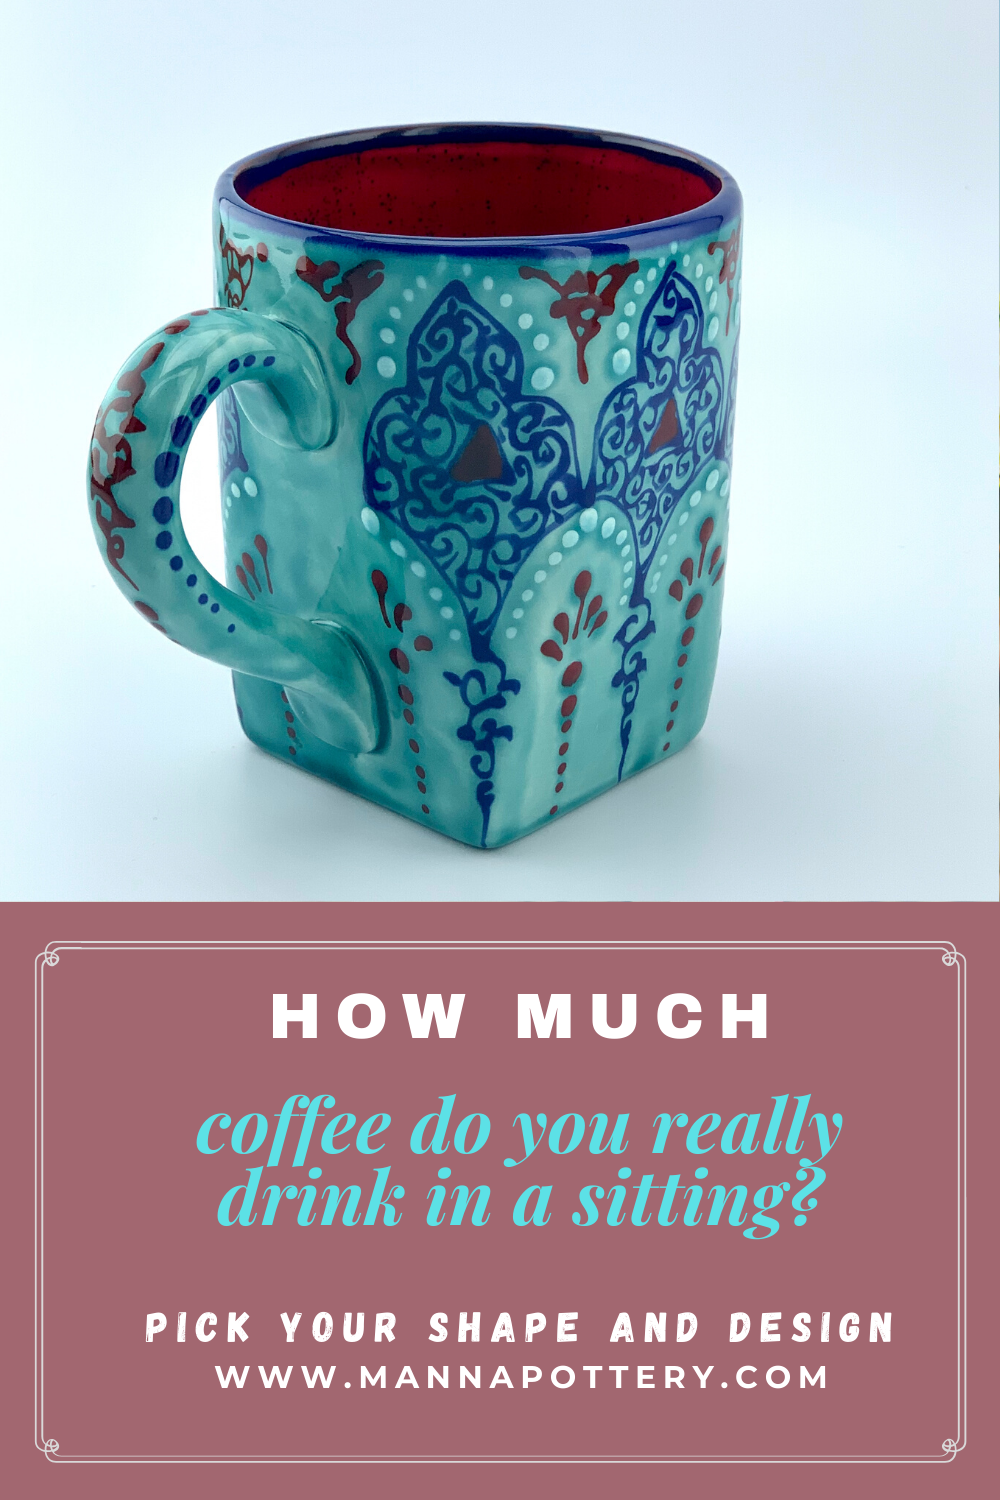 How much coffee do you really drink in a sitting? the best